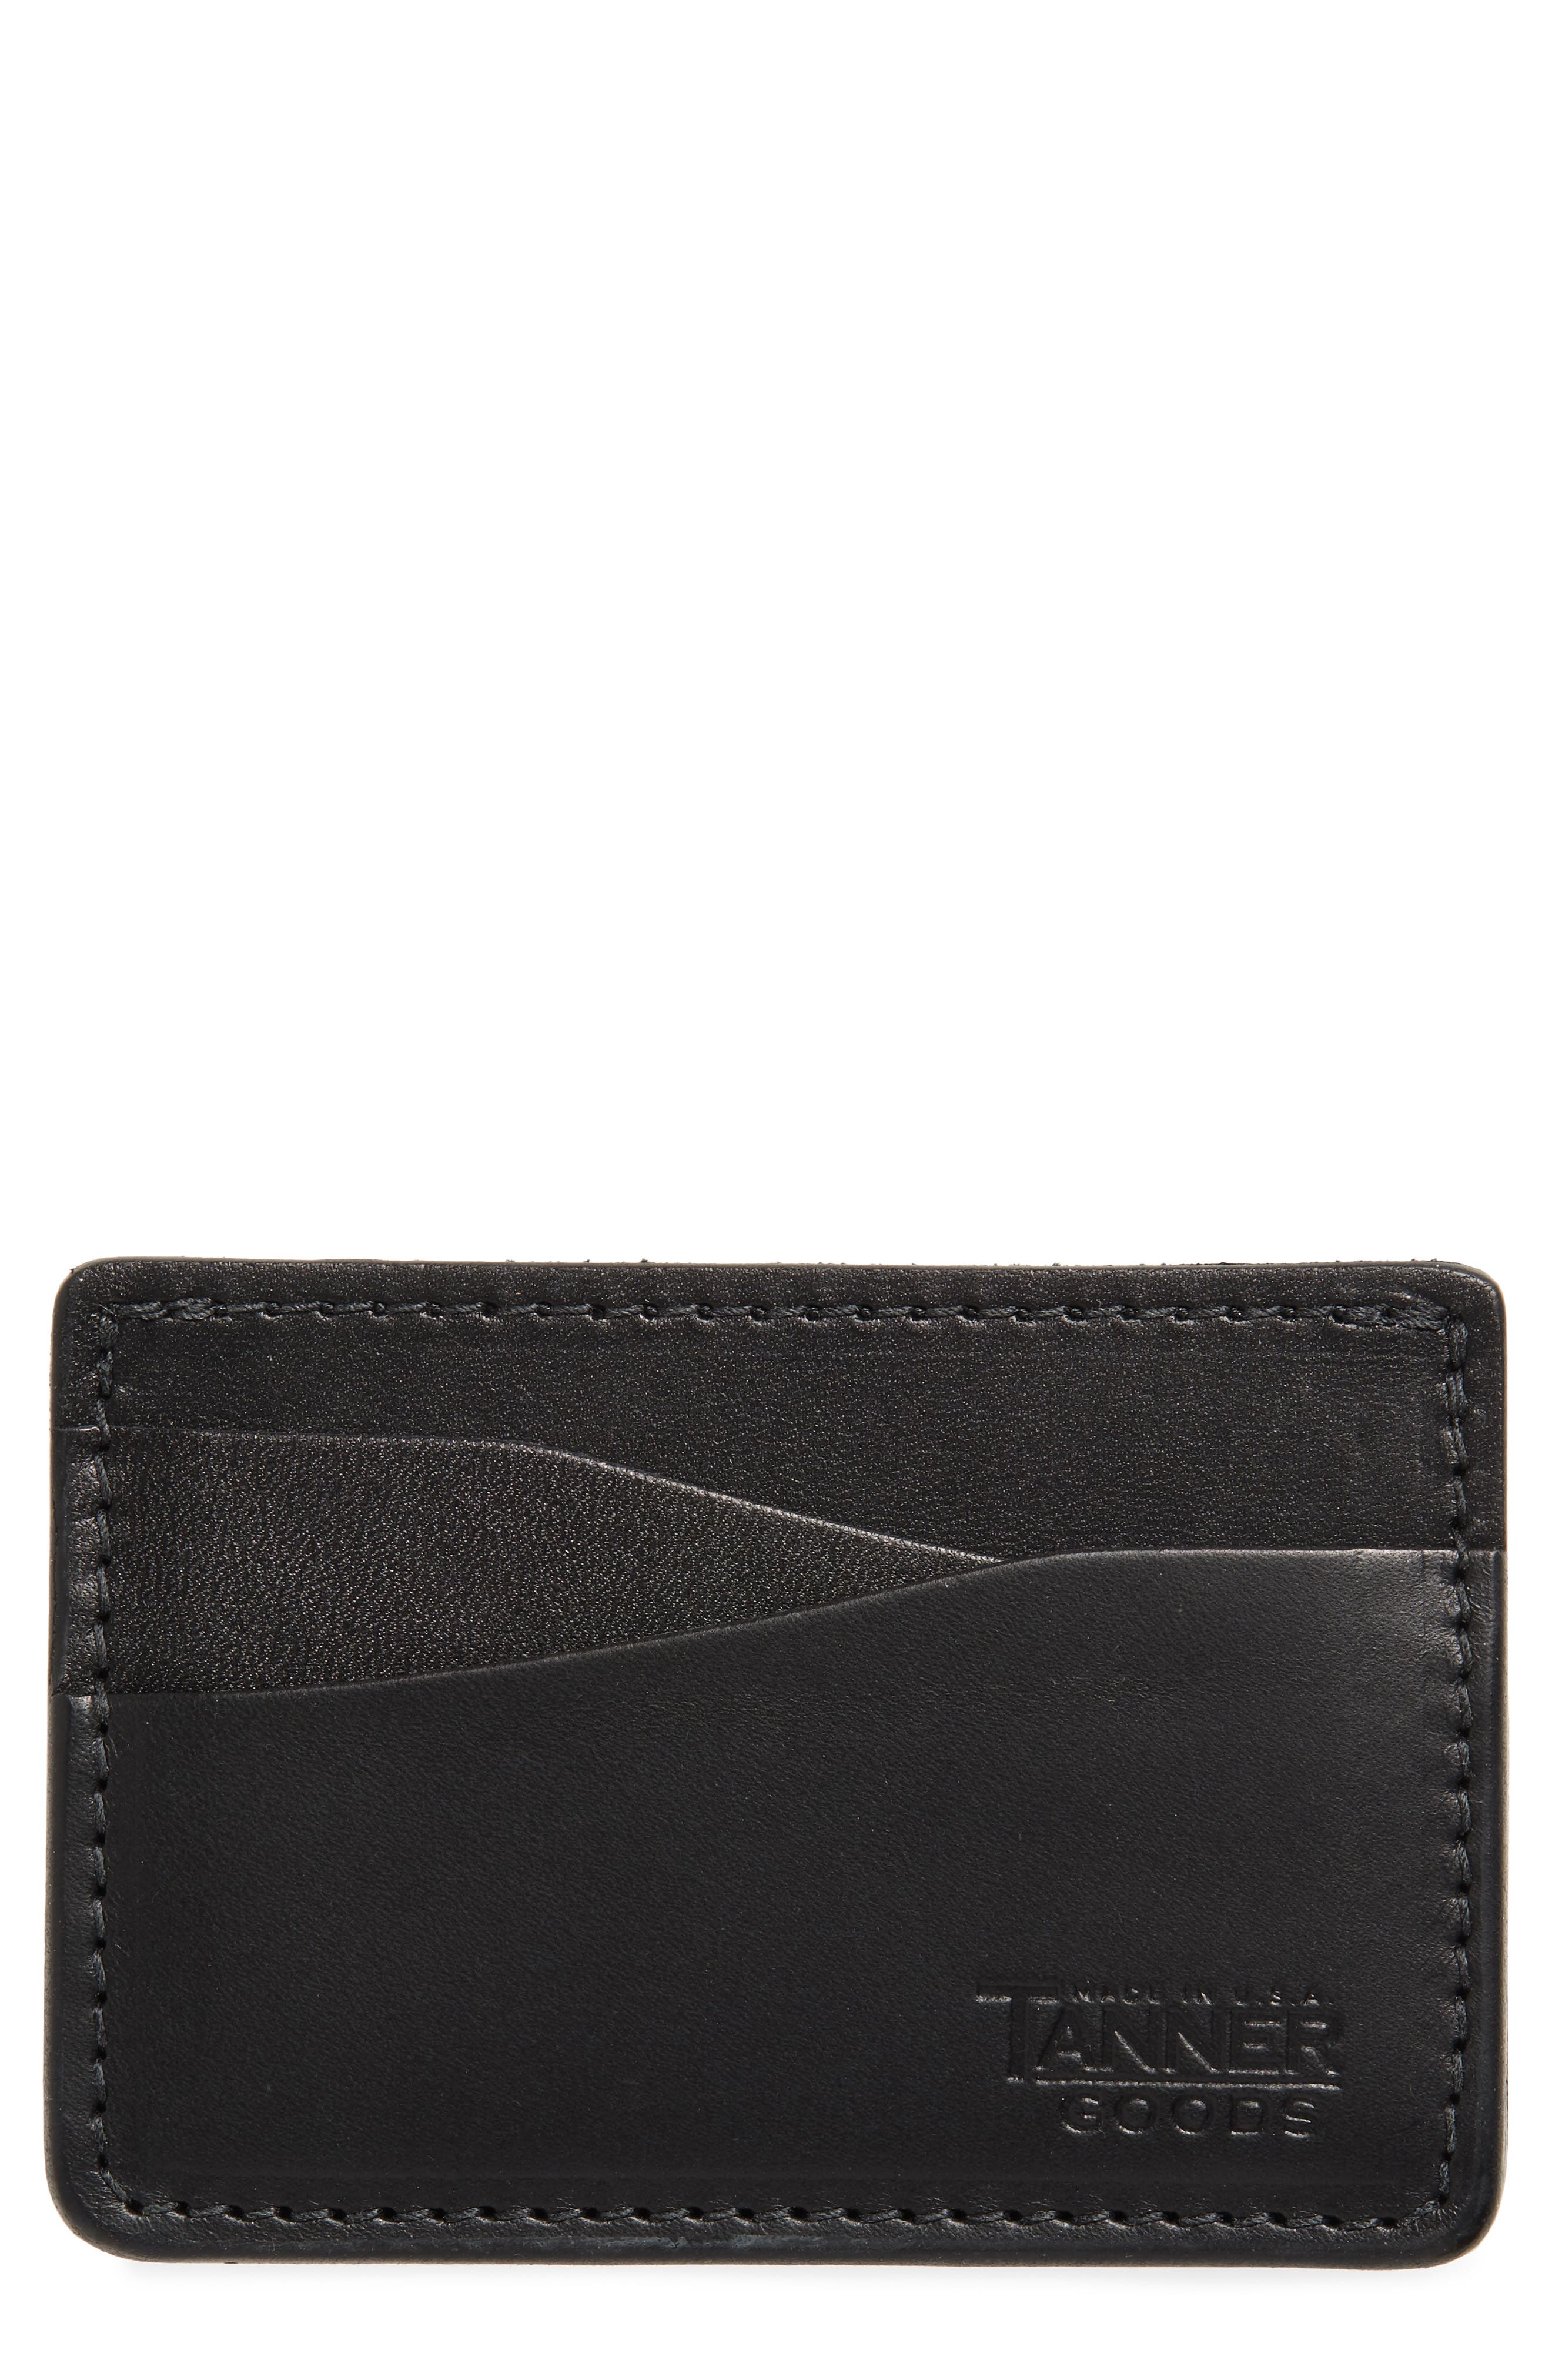 Journeyman Leather Card Case,                             Main thumbnail 1, color,                             BLACK